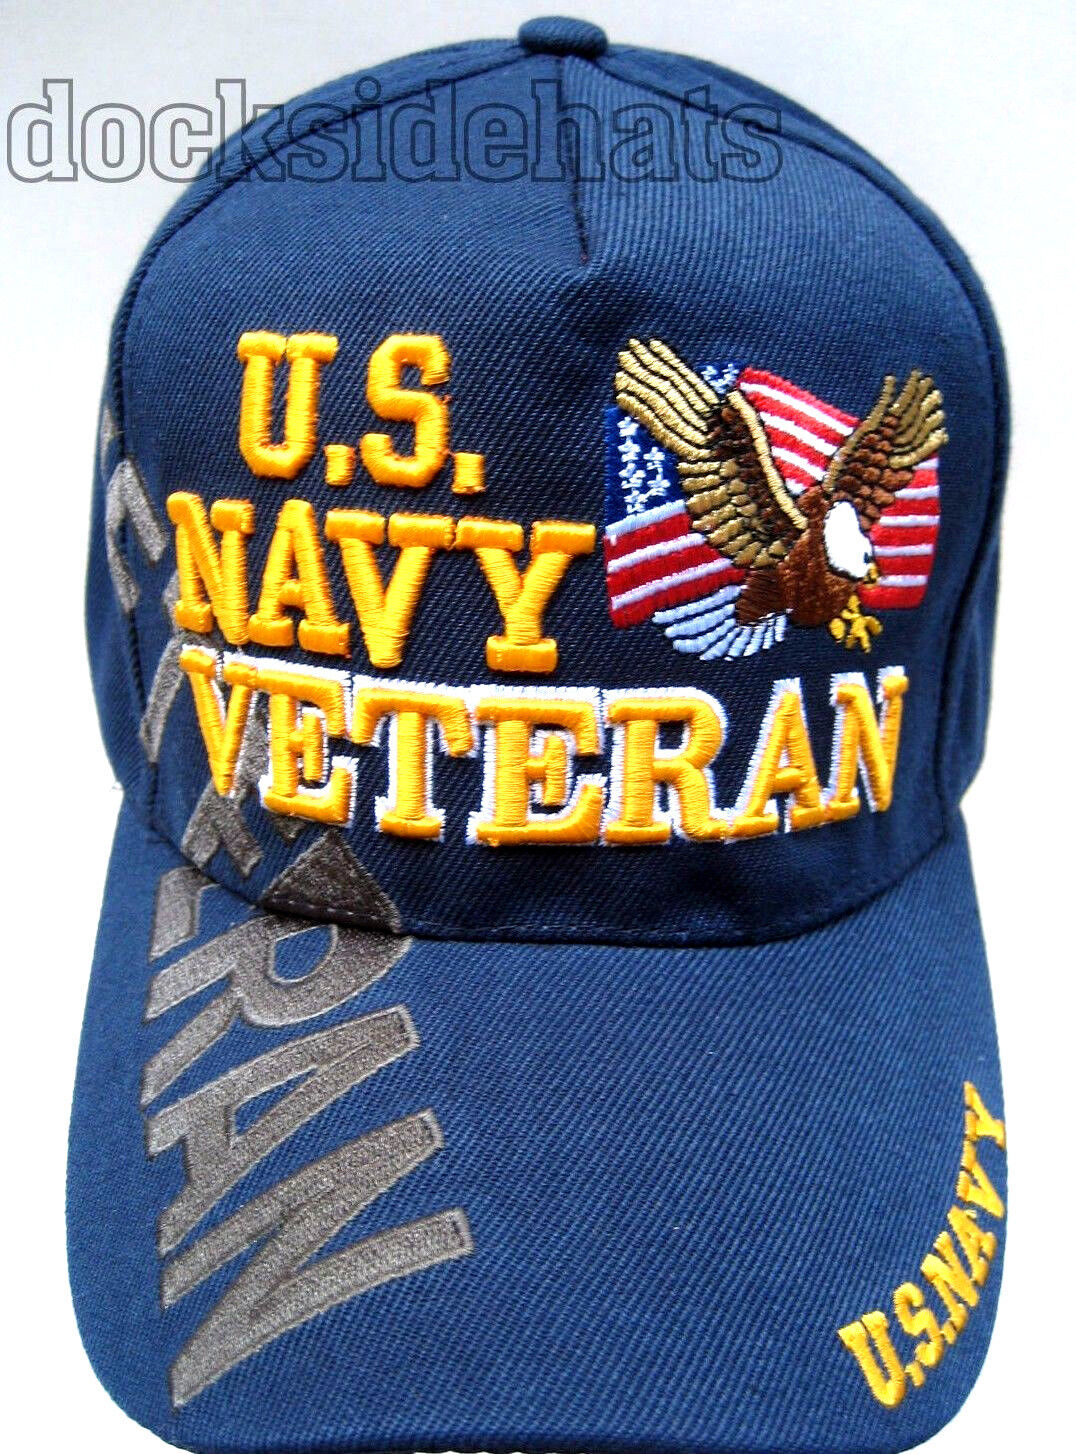 U.S NAVY VETERAN Cap/Hat W/Flag & Eagle Blue Military *Free